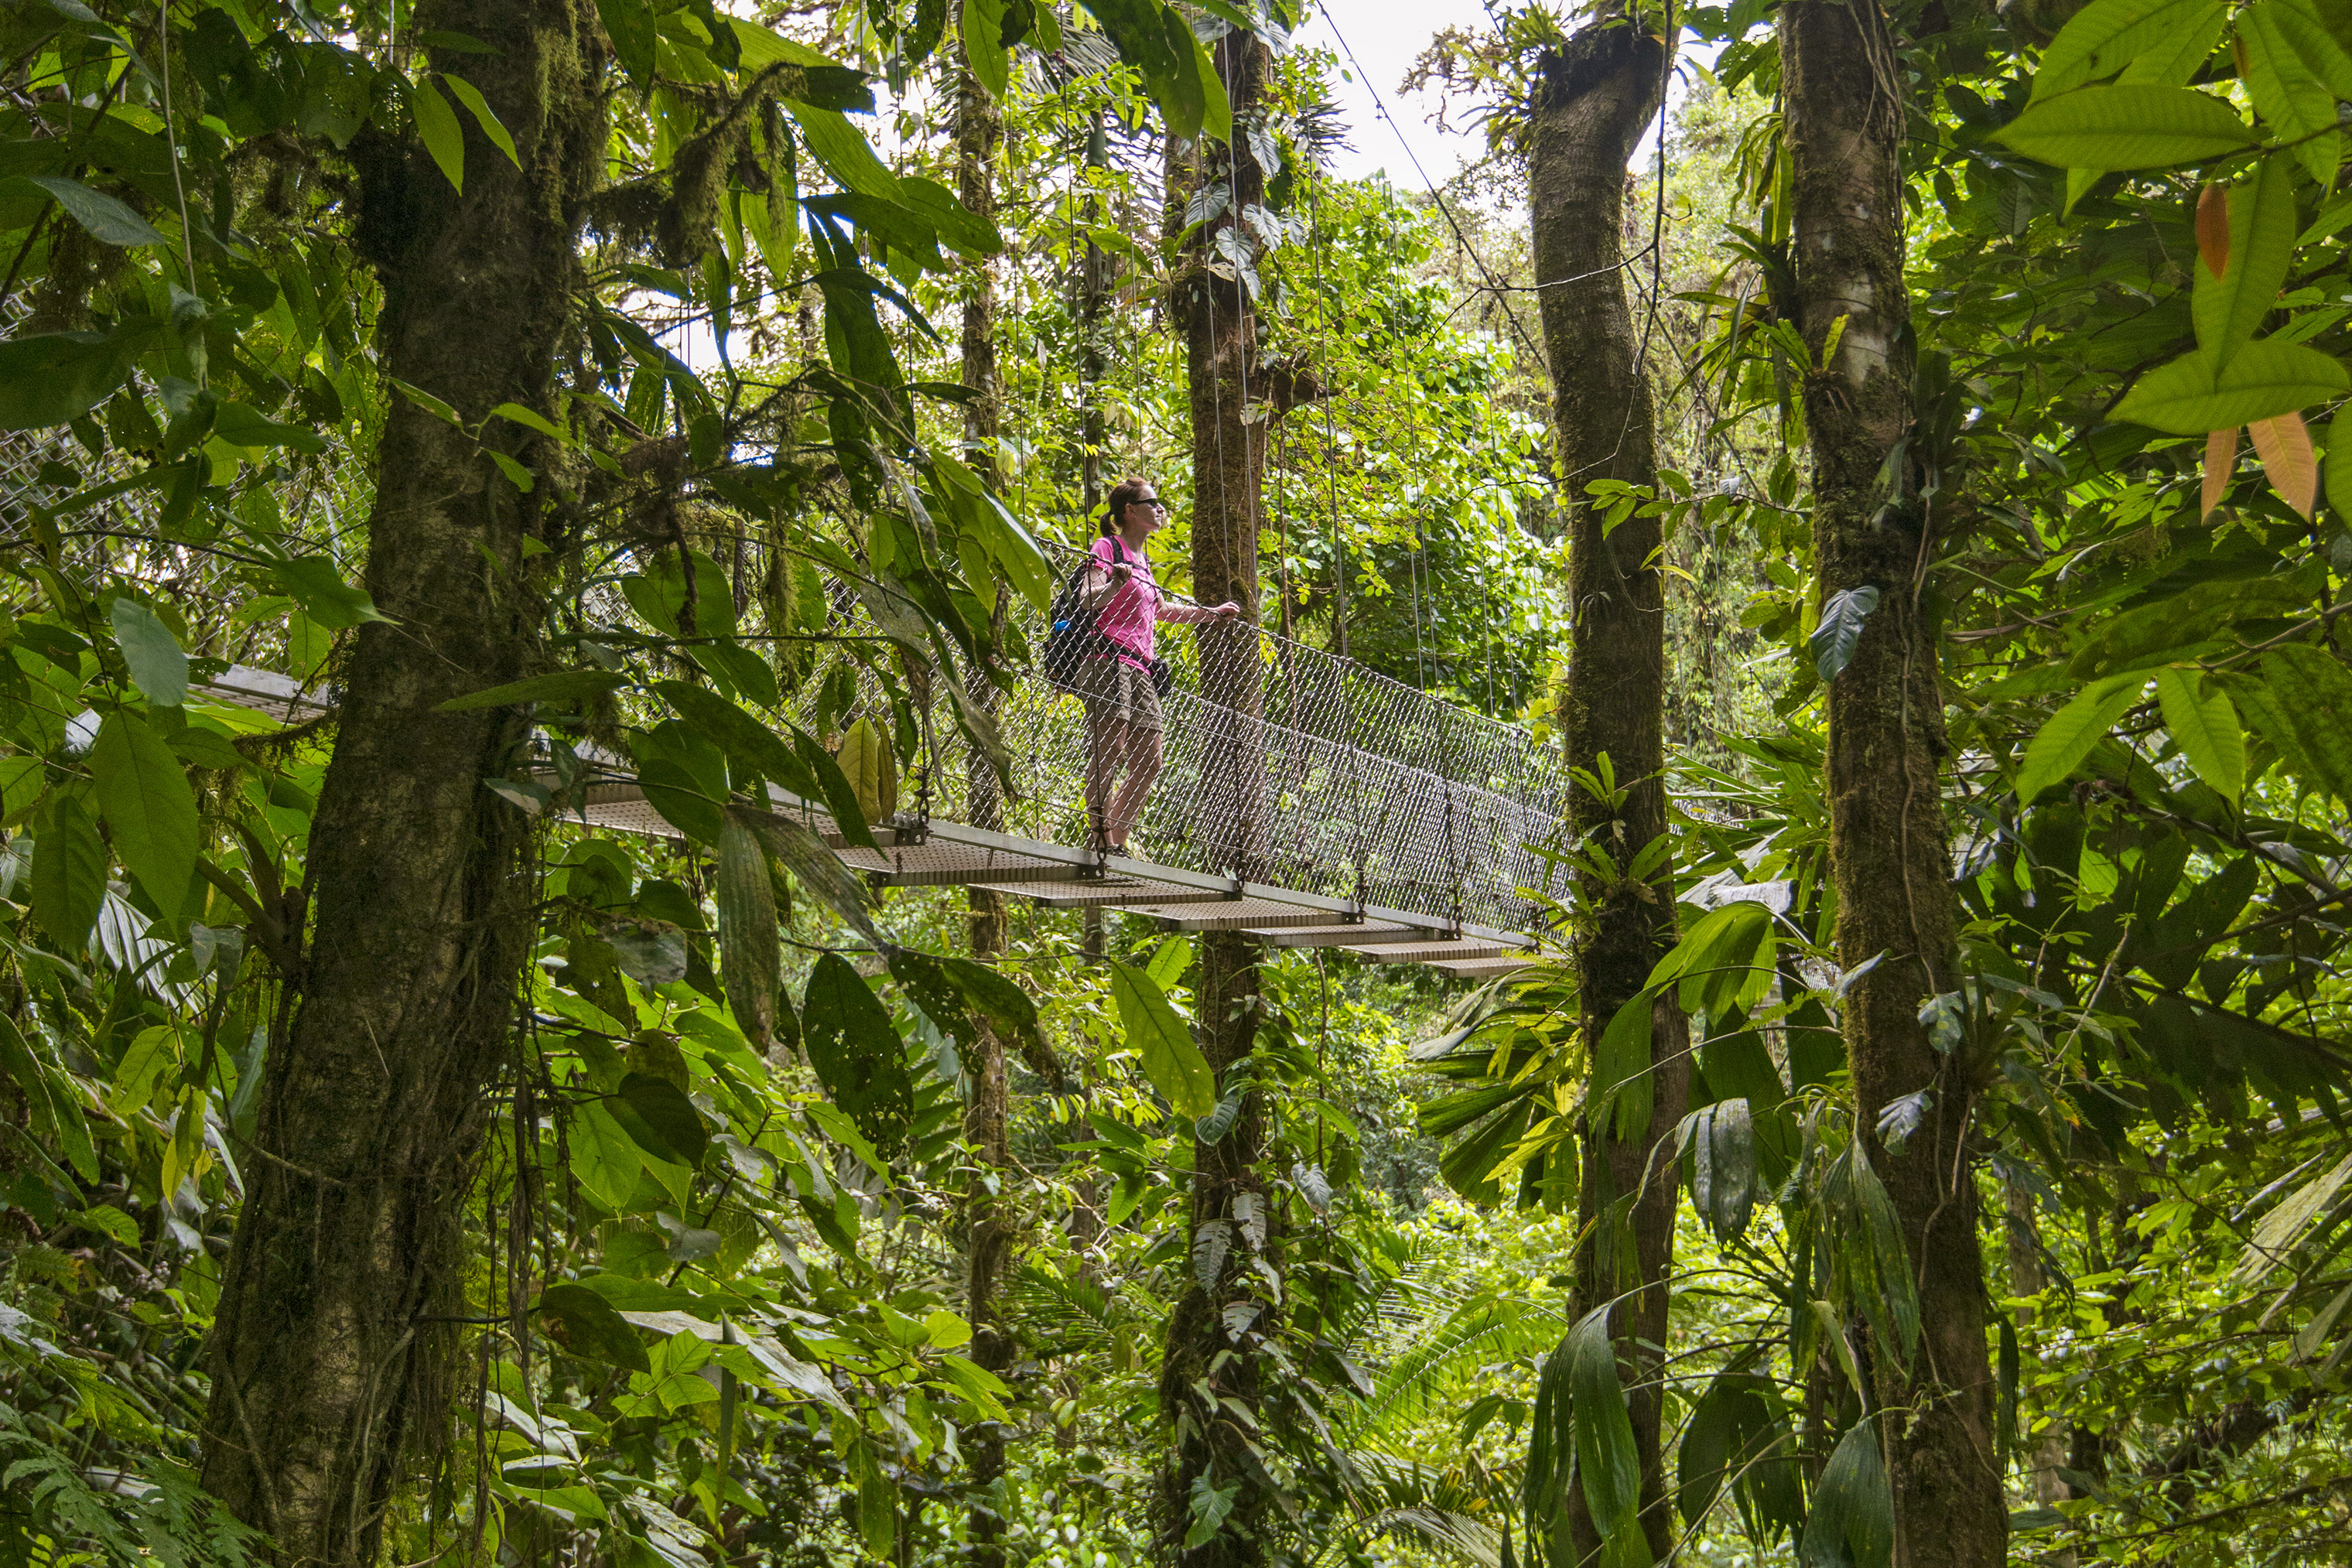 The Monteverde Cloud Forest Reserve gives visitors an up-close view of the region's vast biodiversity.